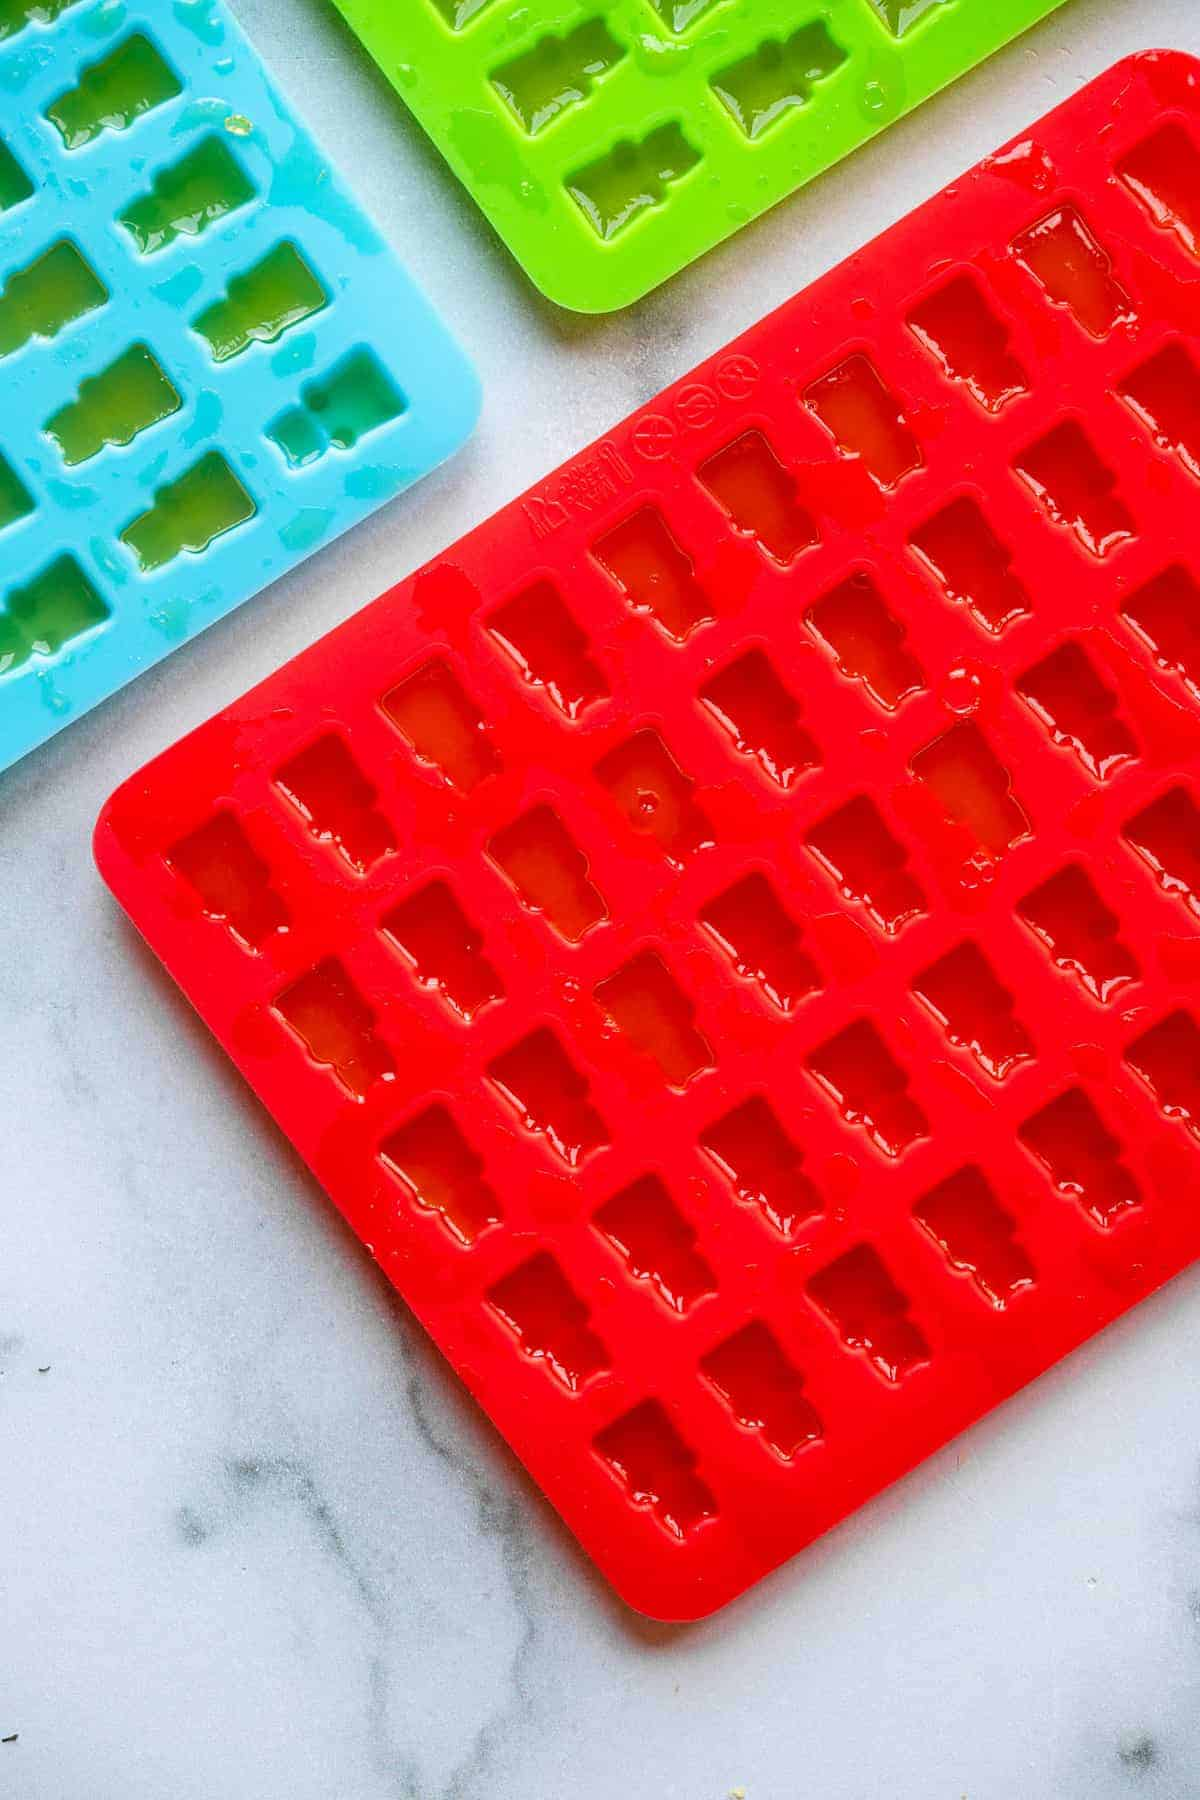 gummy bear mold being filled with healthy gummies